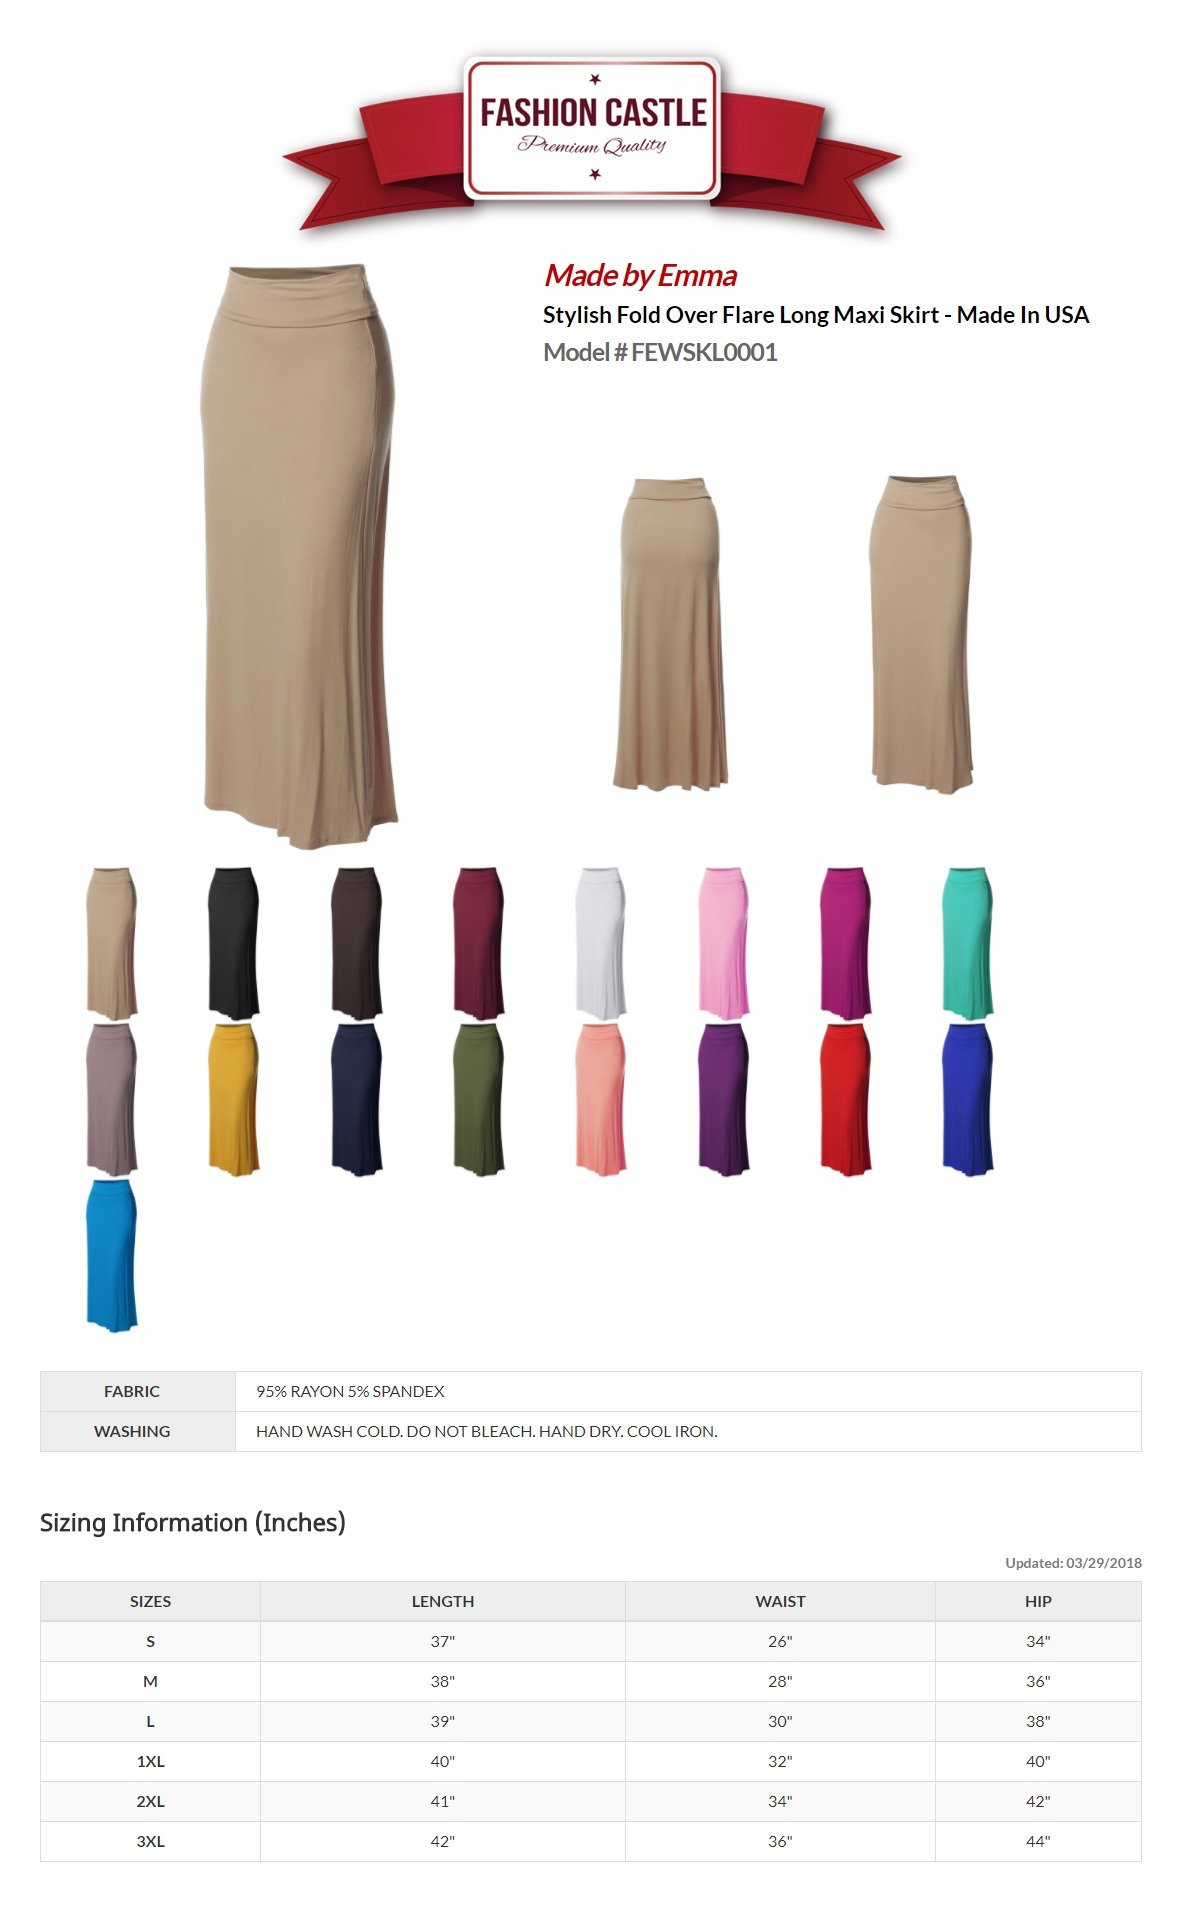 Stylish Fold Over Flare Long Maxi Skirt - Made in USA Beige M by Made by Emma (Image #5)